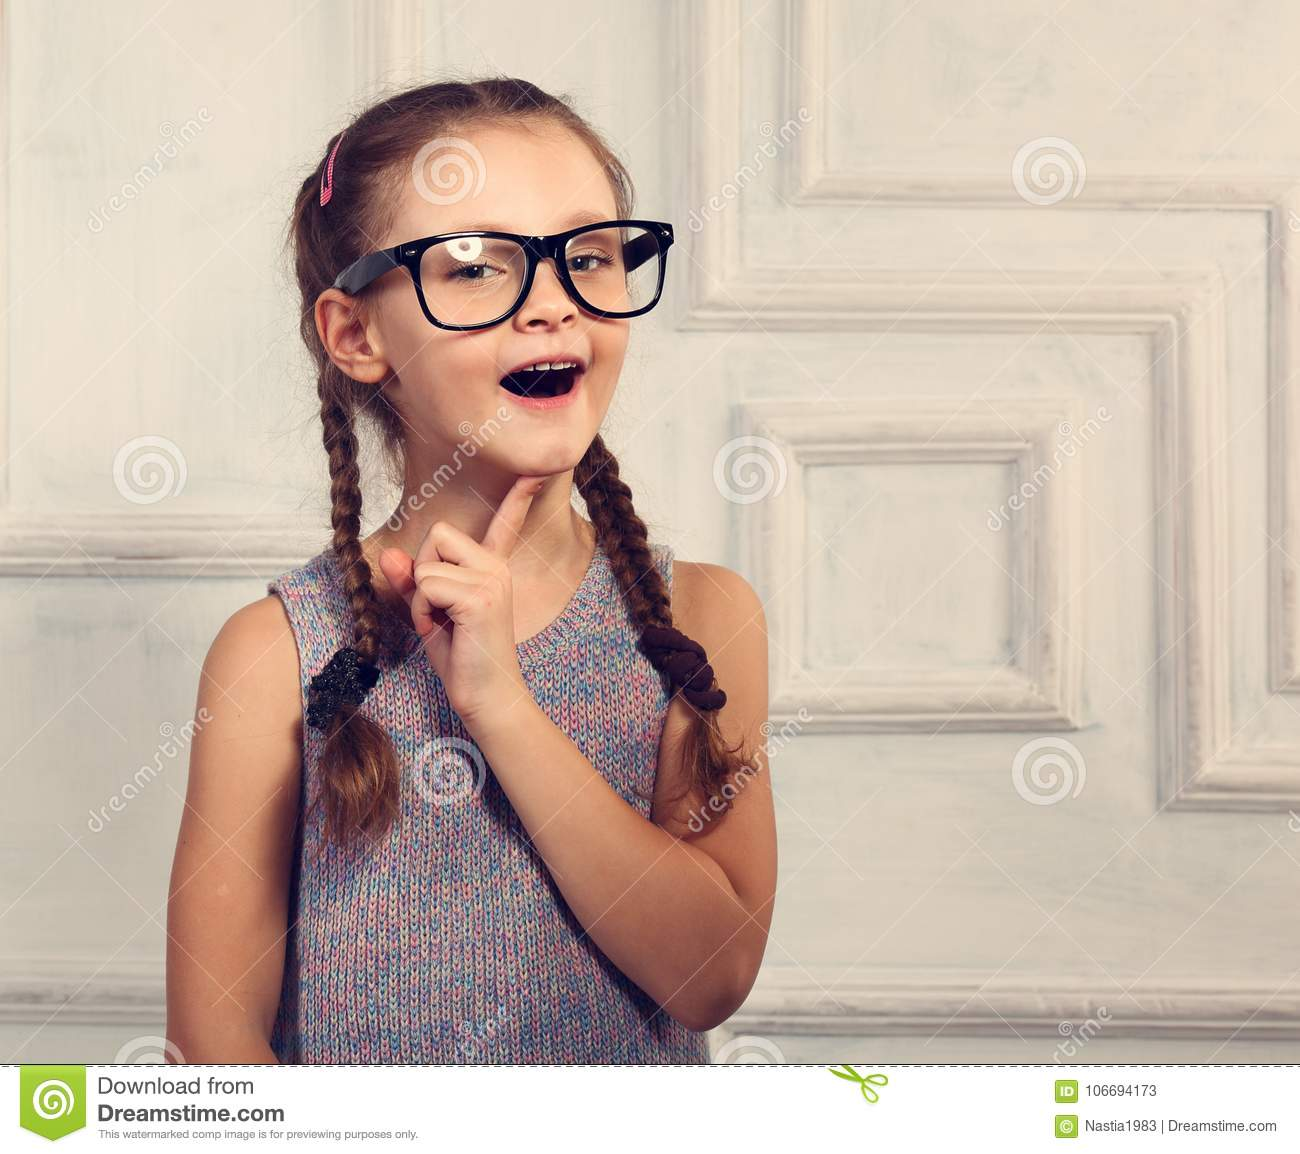 78039ca12 Thinking Kid Stock Images - Download 25,183 Royalty Free Photos